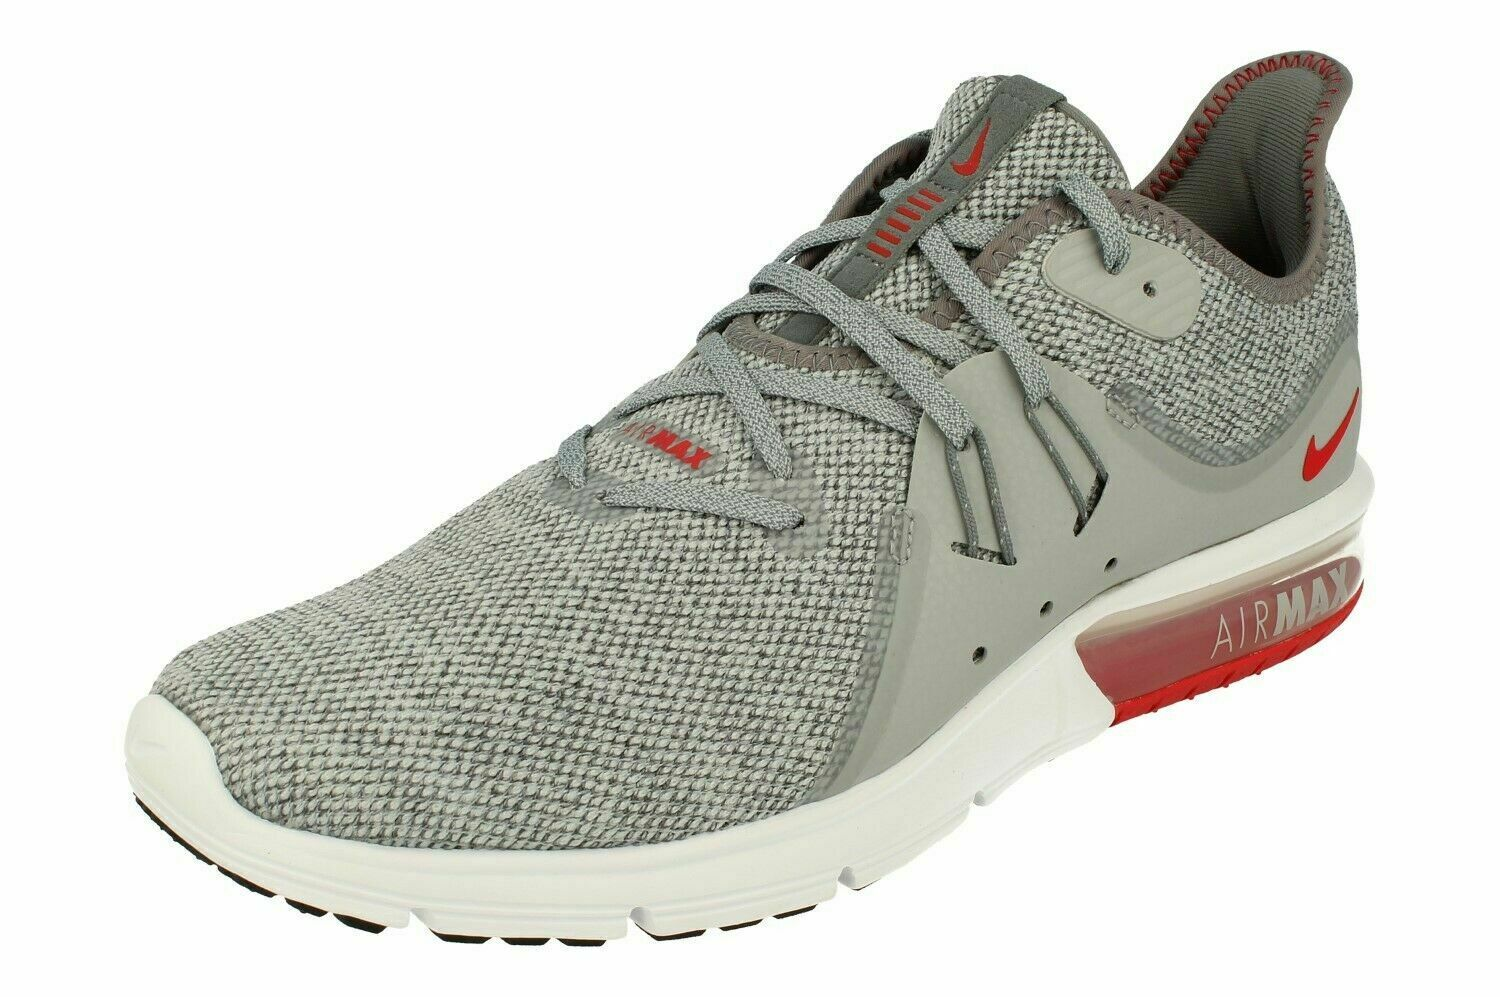 huge discount b6515 c308c Nike Air Max Sequent 3 Running Shoes Cool Gray Red White 921694-060 Men's  NEW